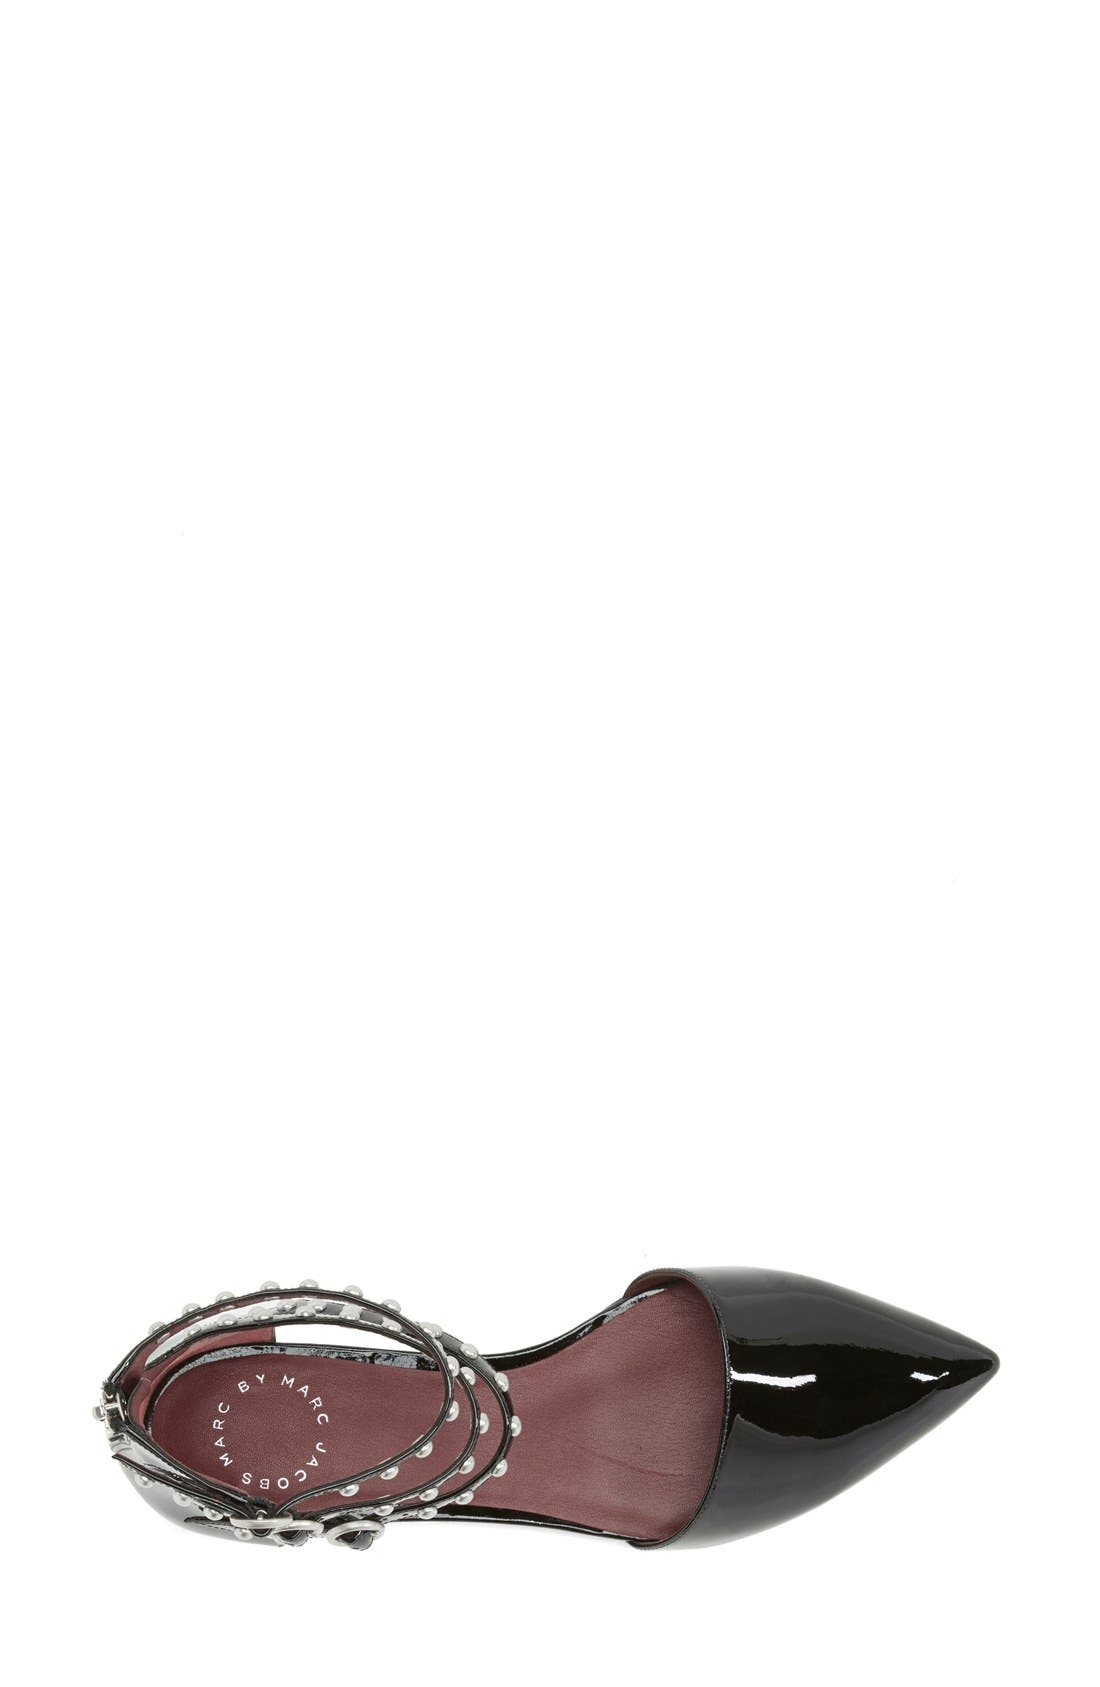 Alternate Image 3  - MARC BY MARC JACOBS 'Minetta' Ankle Strap Flat (Women)